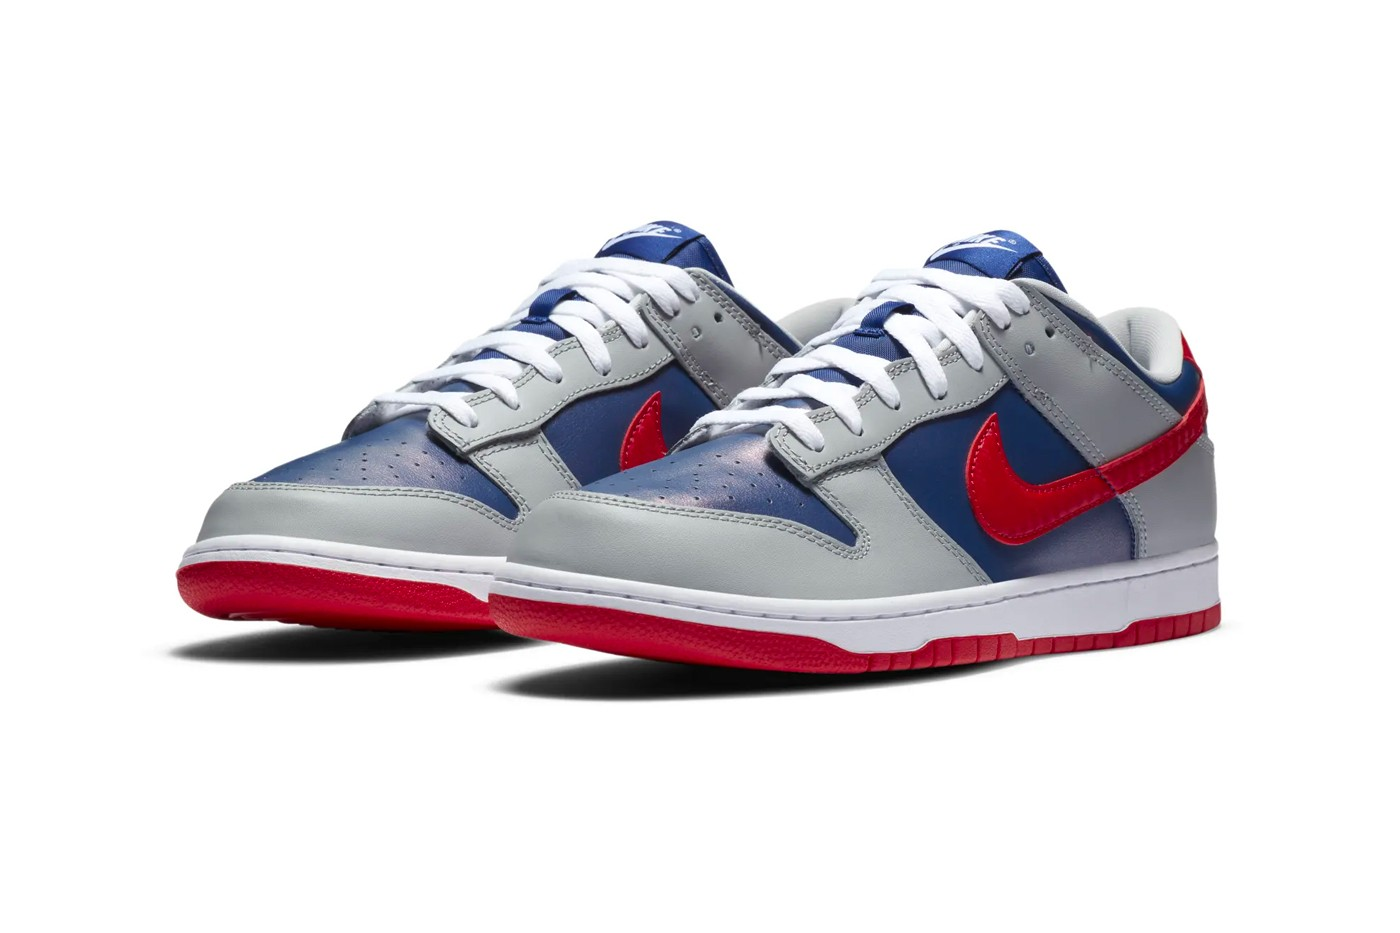 Nike's Dunk Low revival continues with the 'Samba'